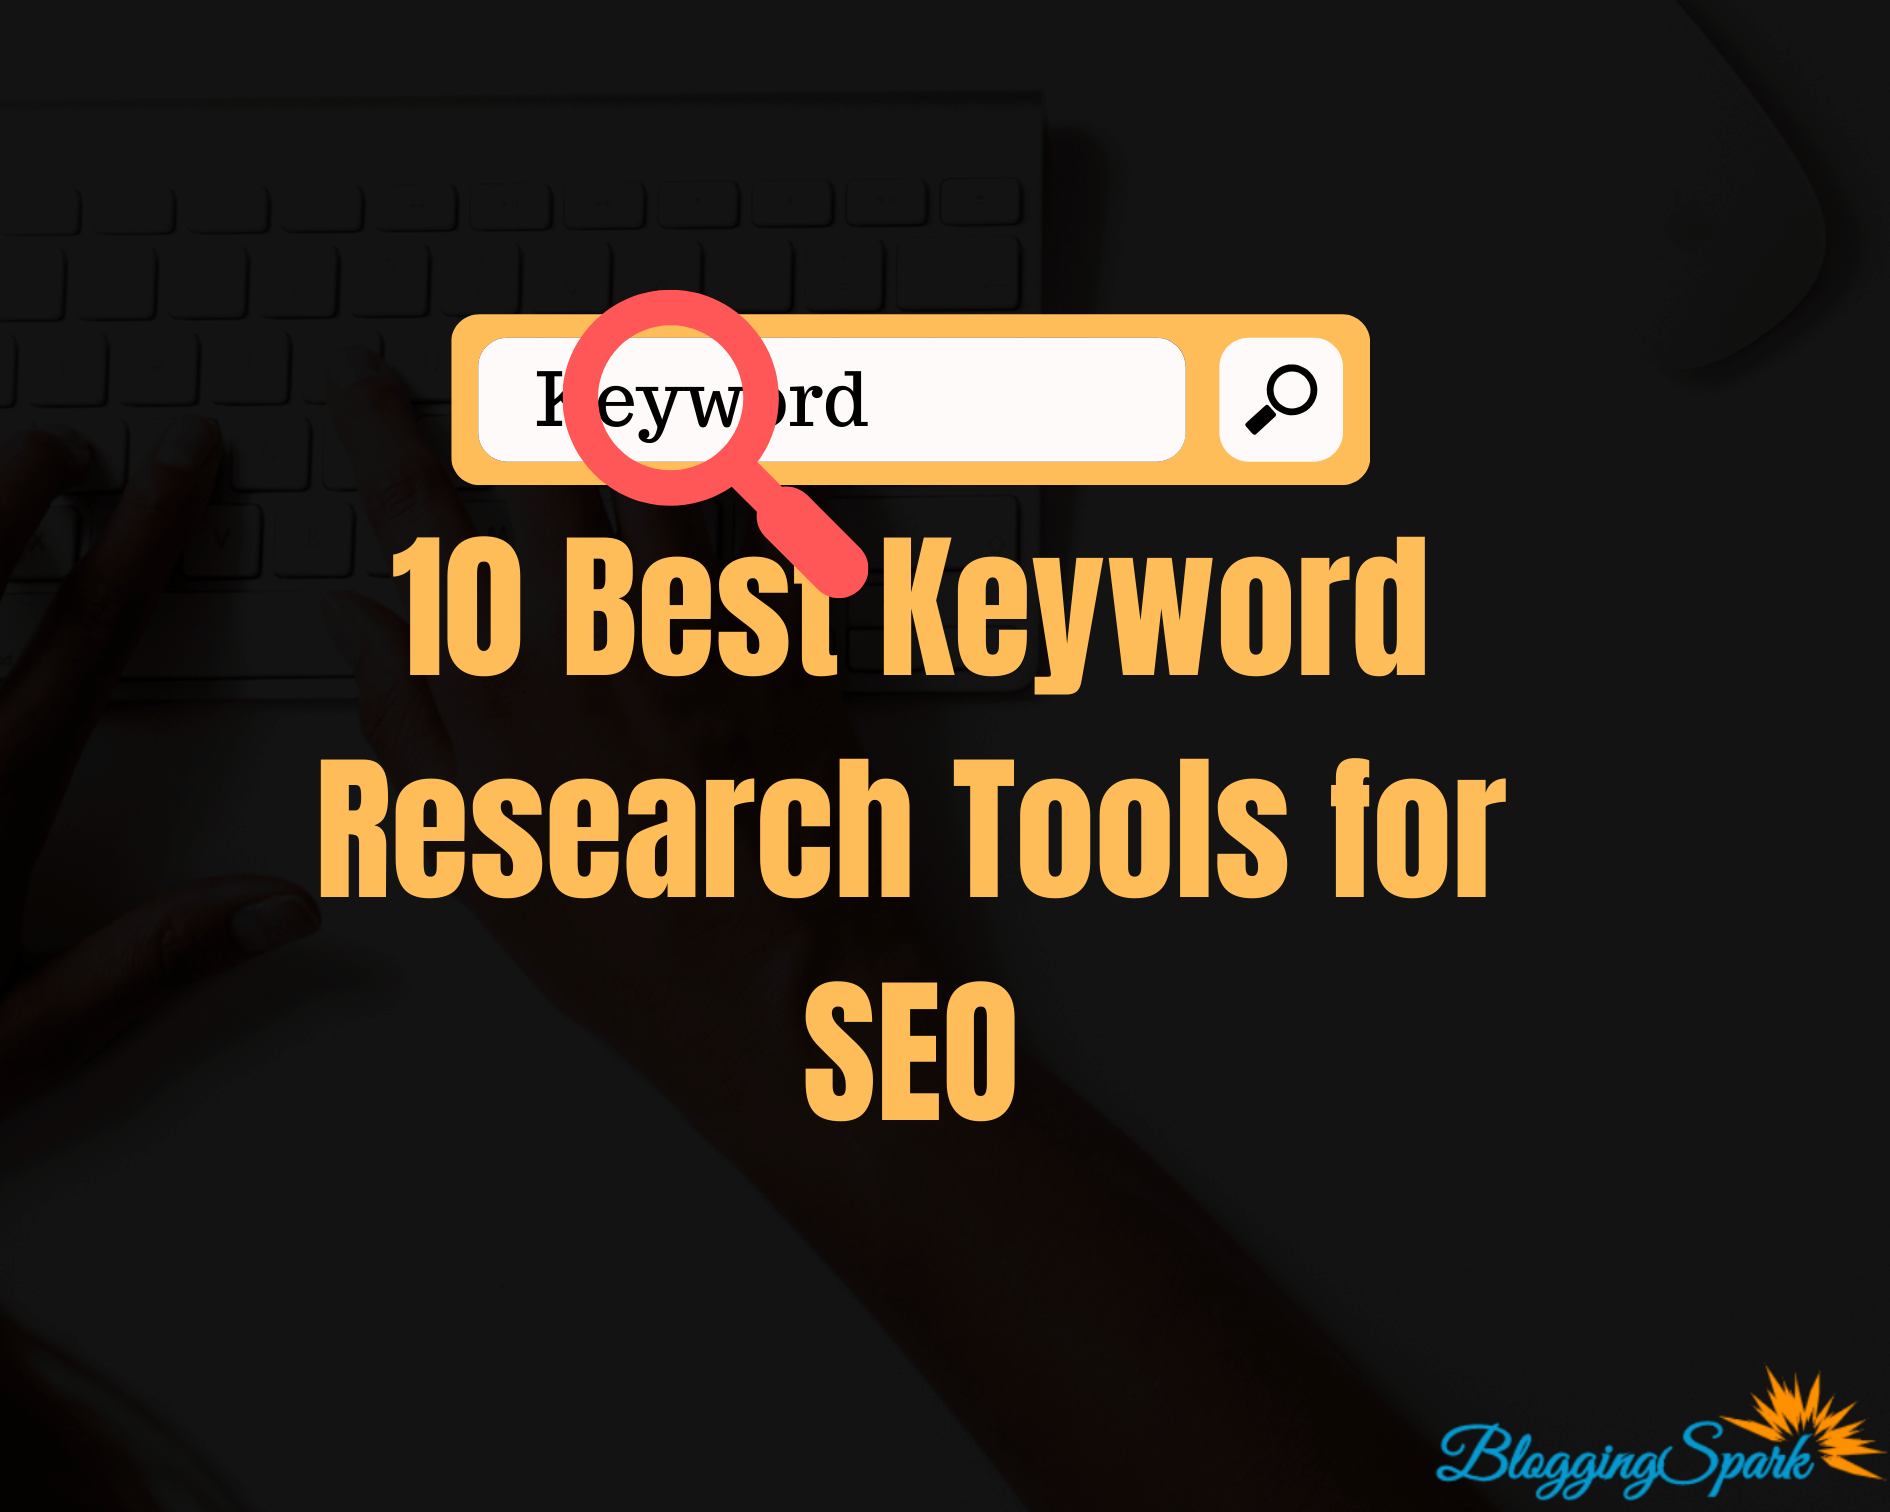 10 Best Keyword Research Tools for SEO in 2020